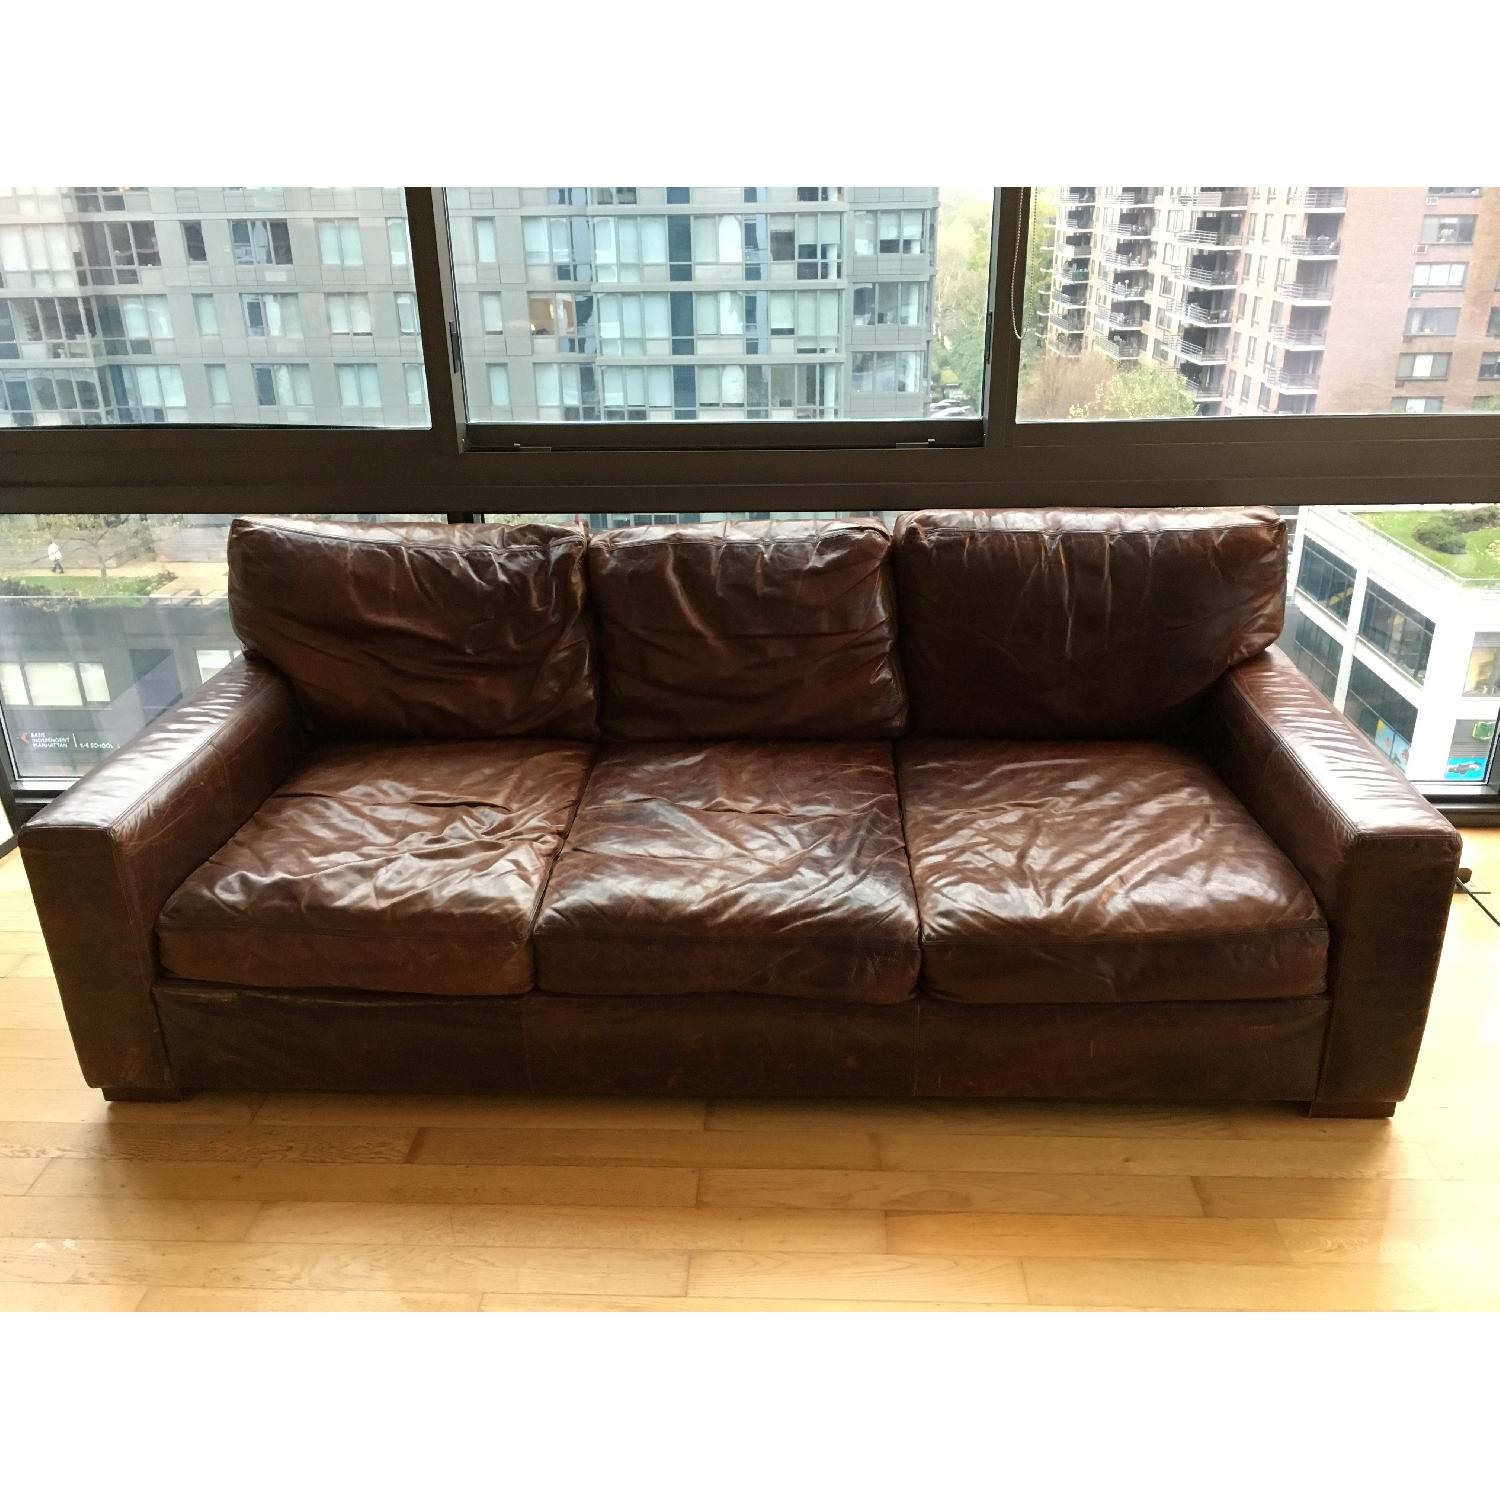 Restoration Hardware Maxwell Leather Sofa in Brompton AptDeco